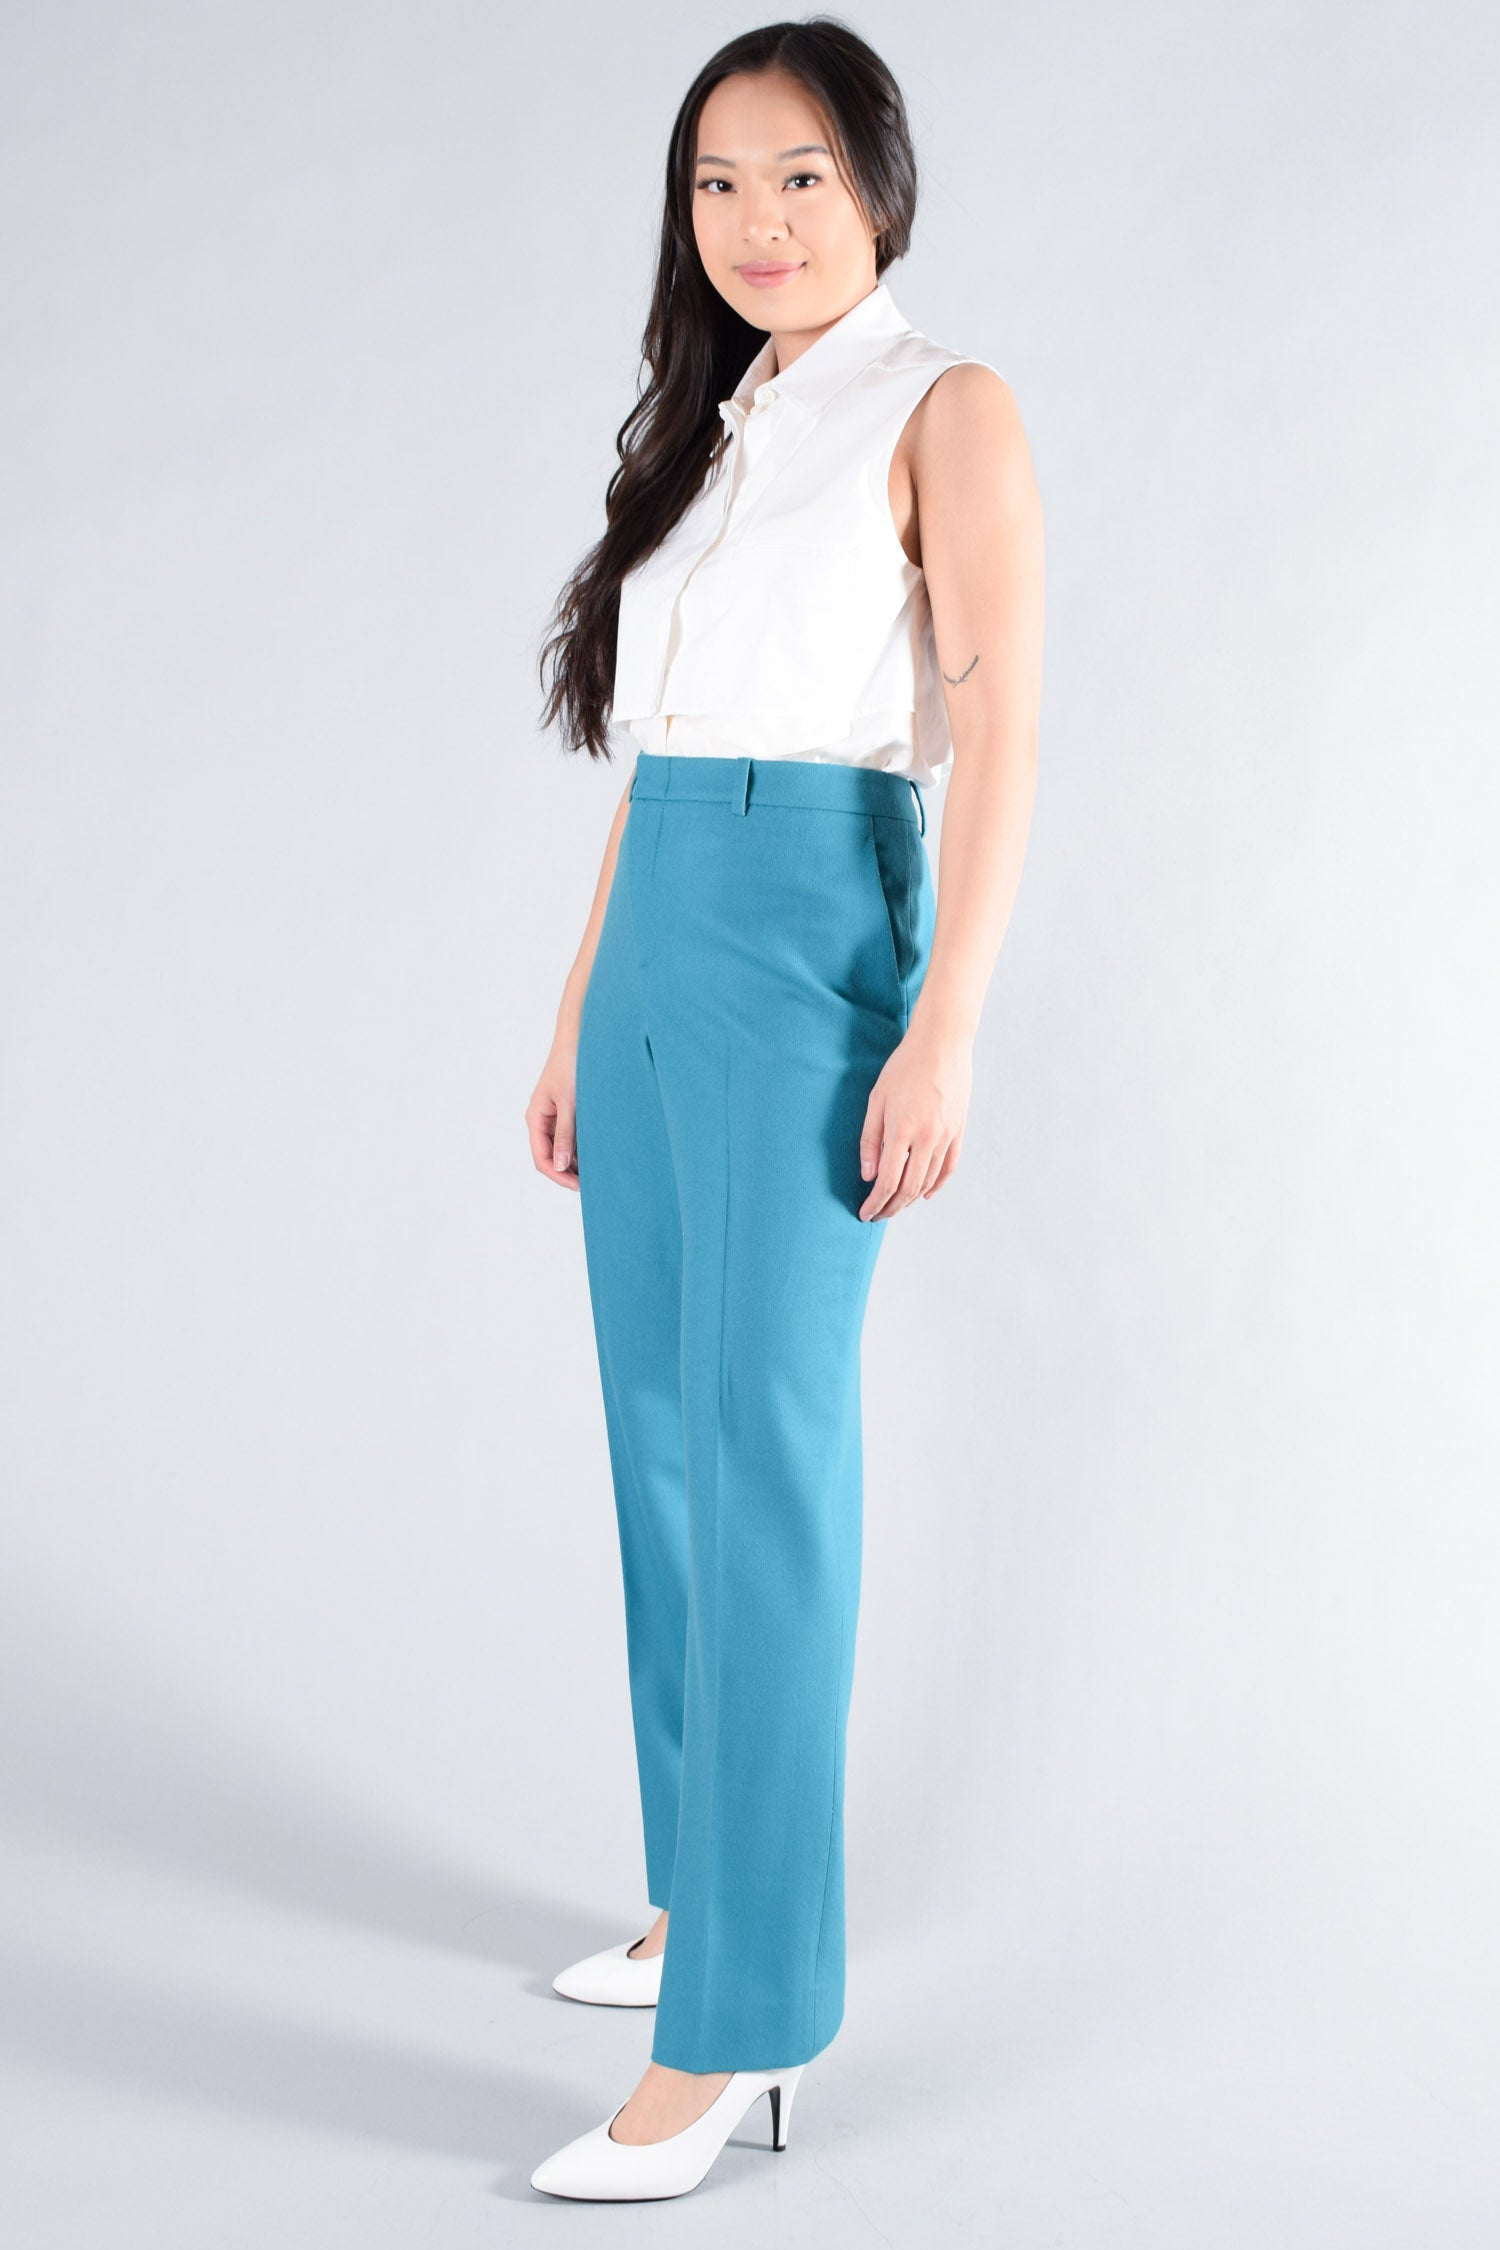 Gucci Teal Pants With Front Pleat Size 46